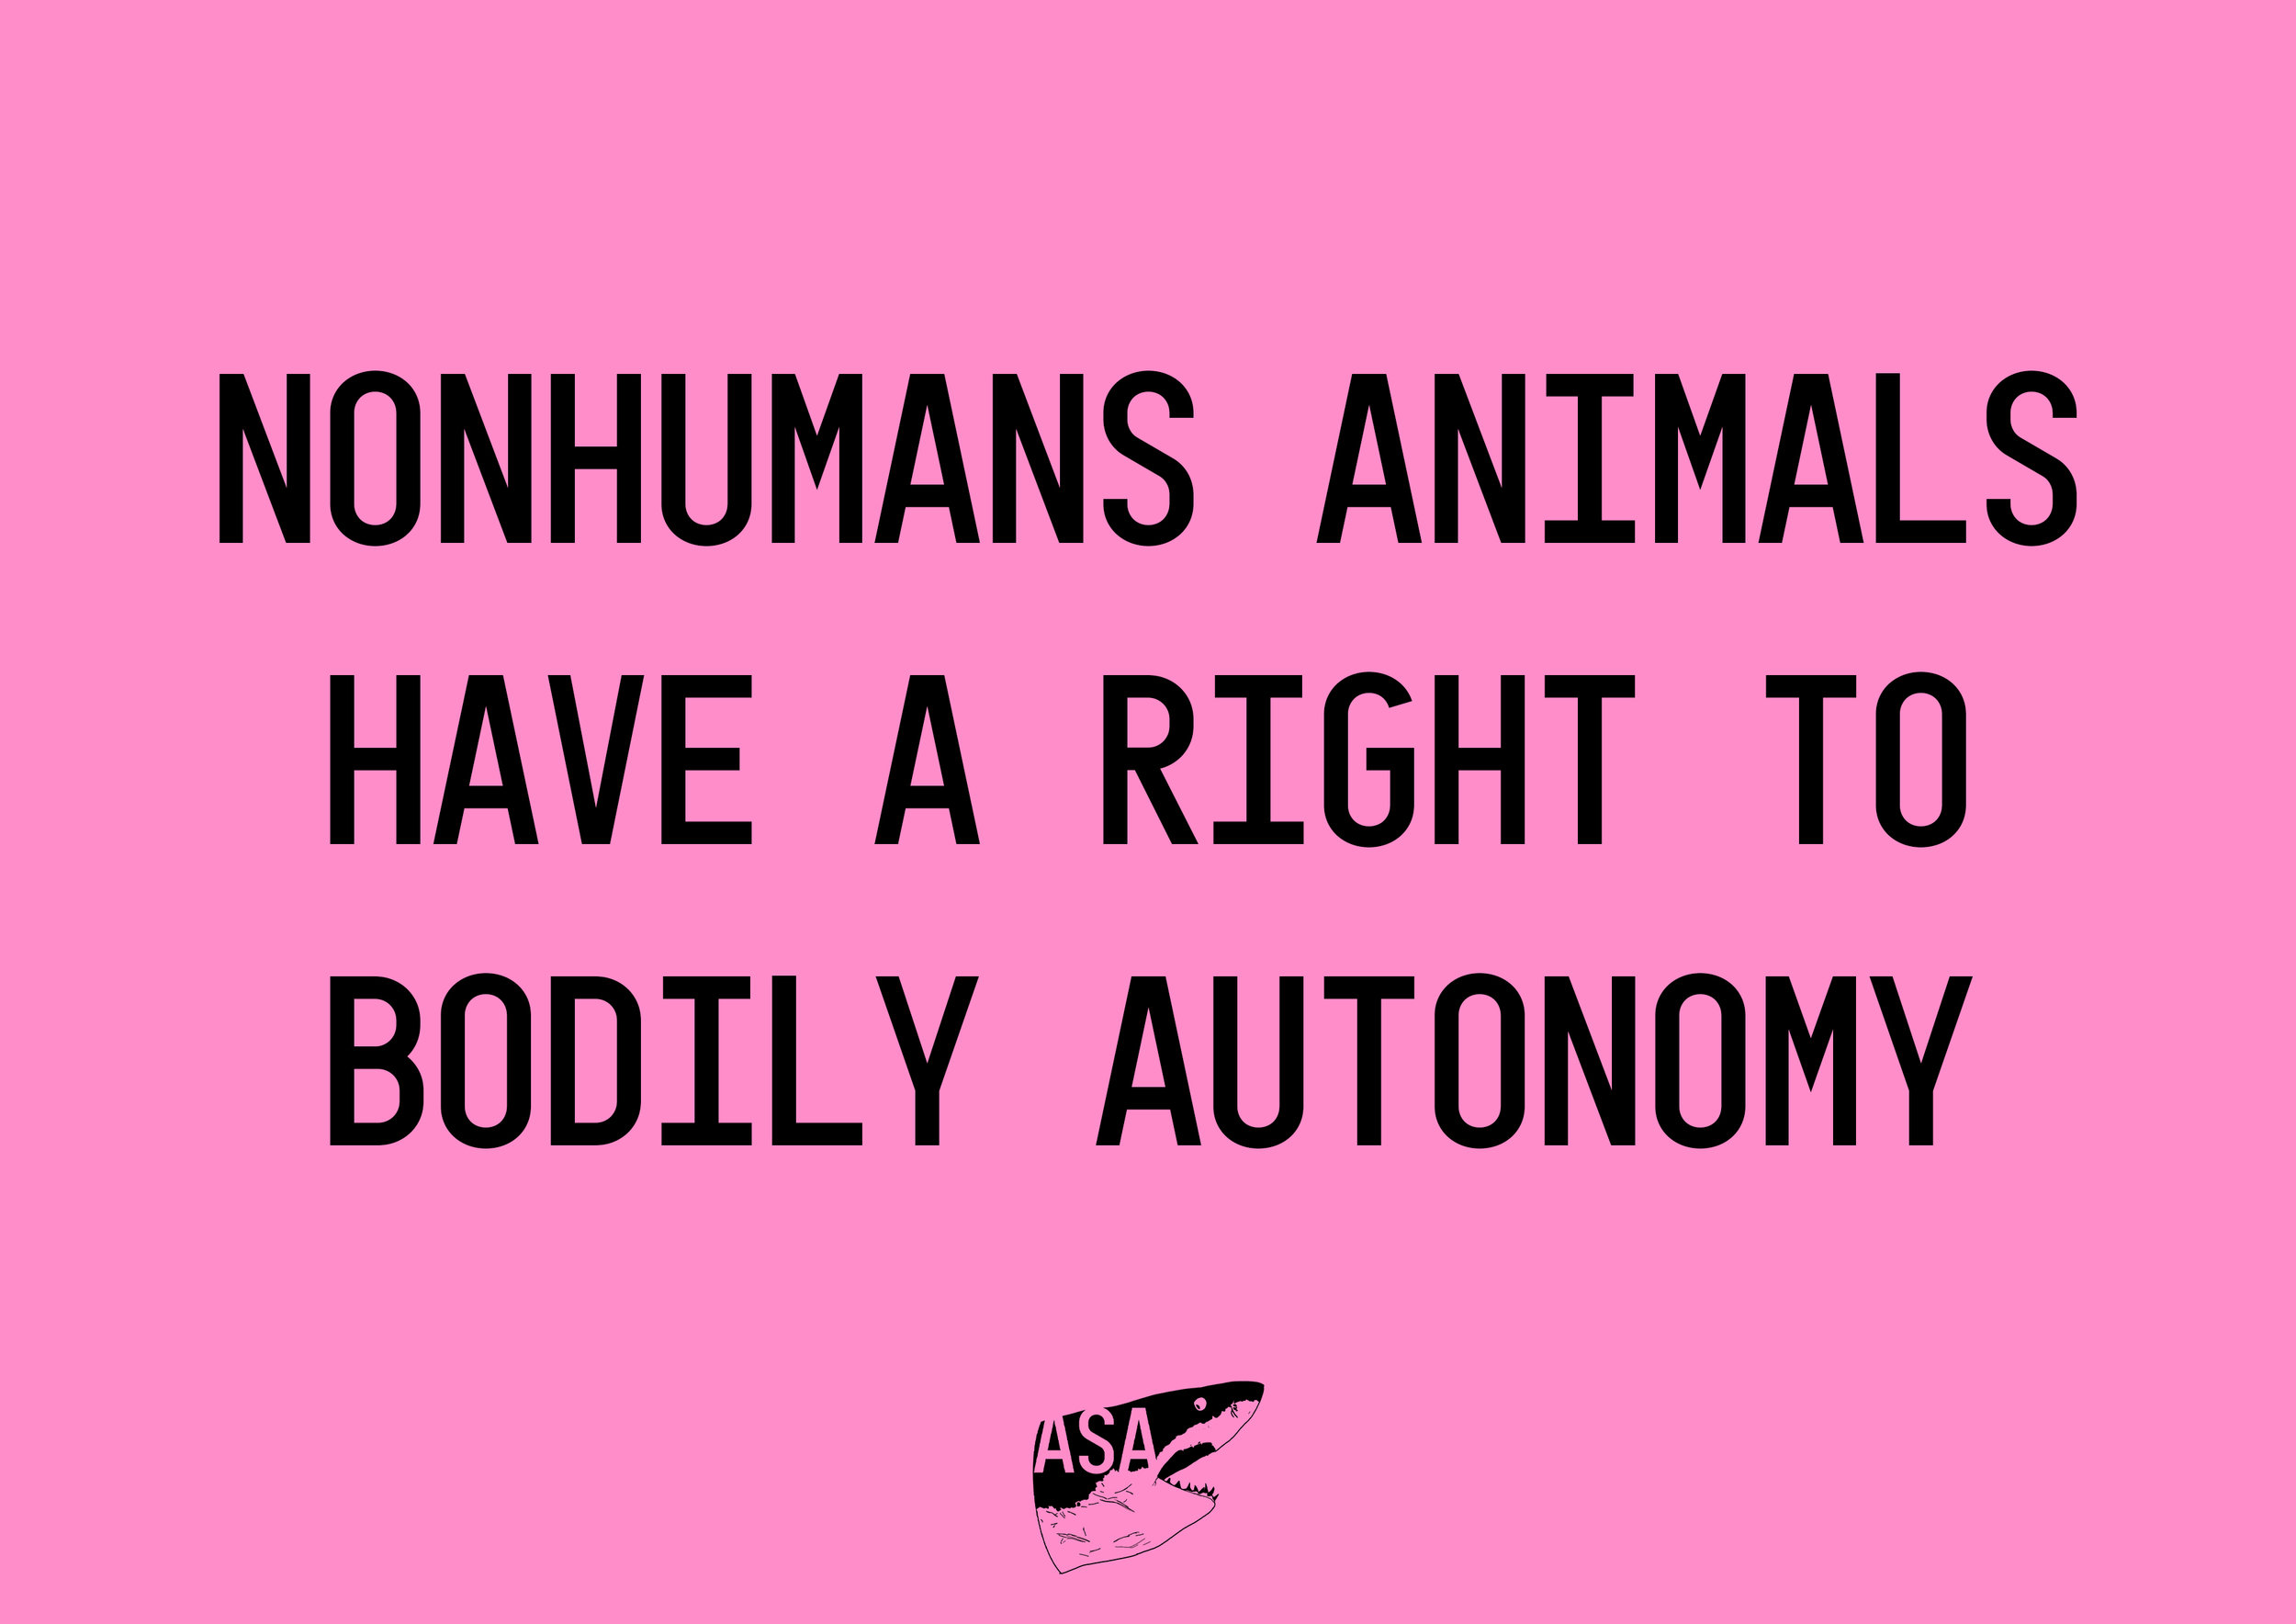 """""""nonhumans have a right to bodily autonomy"""" in black text with our shark ASA logo beneath on a pink background"""